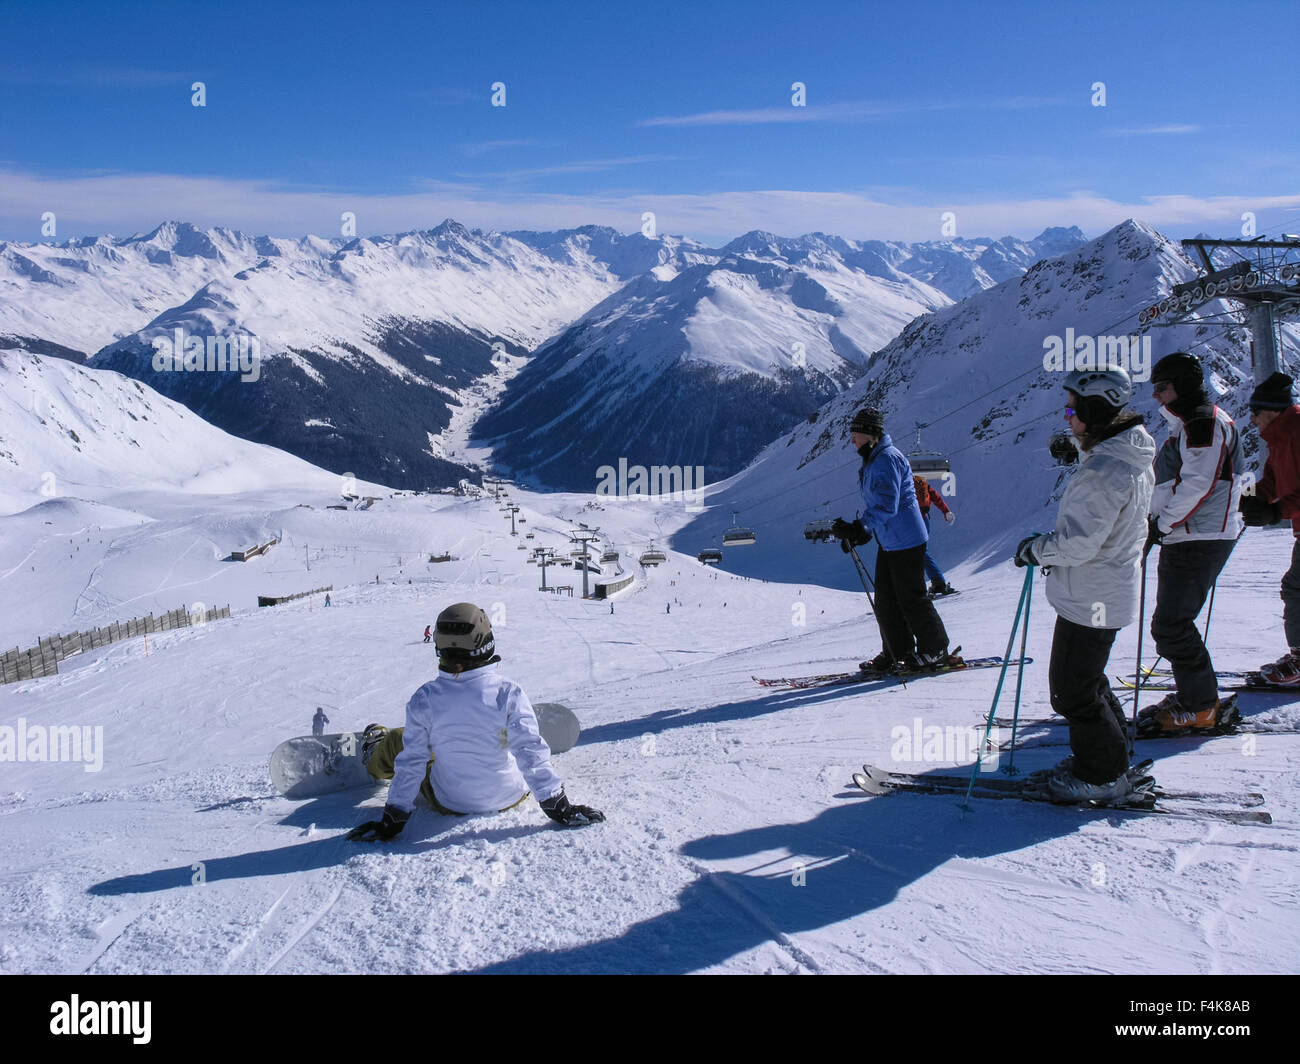 Skiing in Davos / Klosters resort, Switzerland Stock Photo